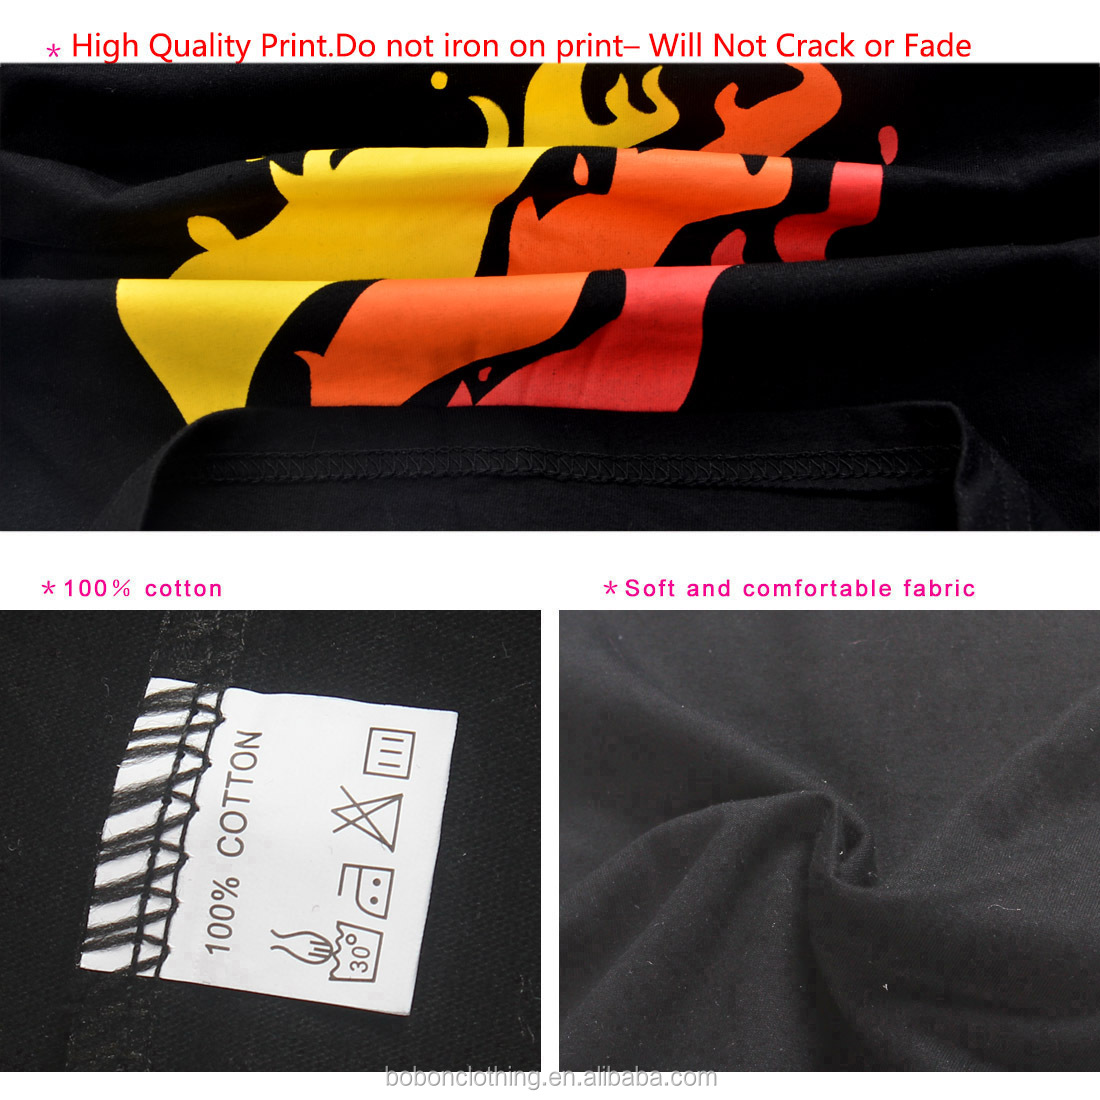 2019 hot prestonplayz printed youth t shirt stock no moq printed prestonplayz t shirt supplier from China